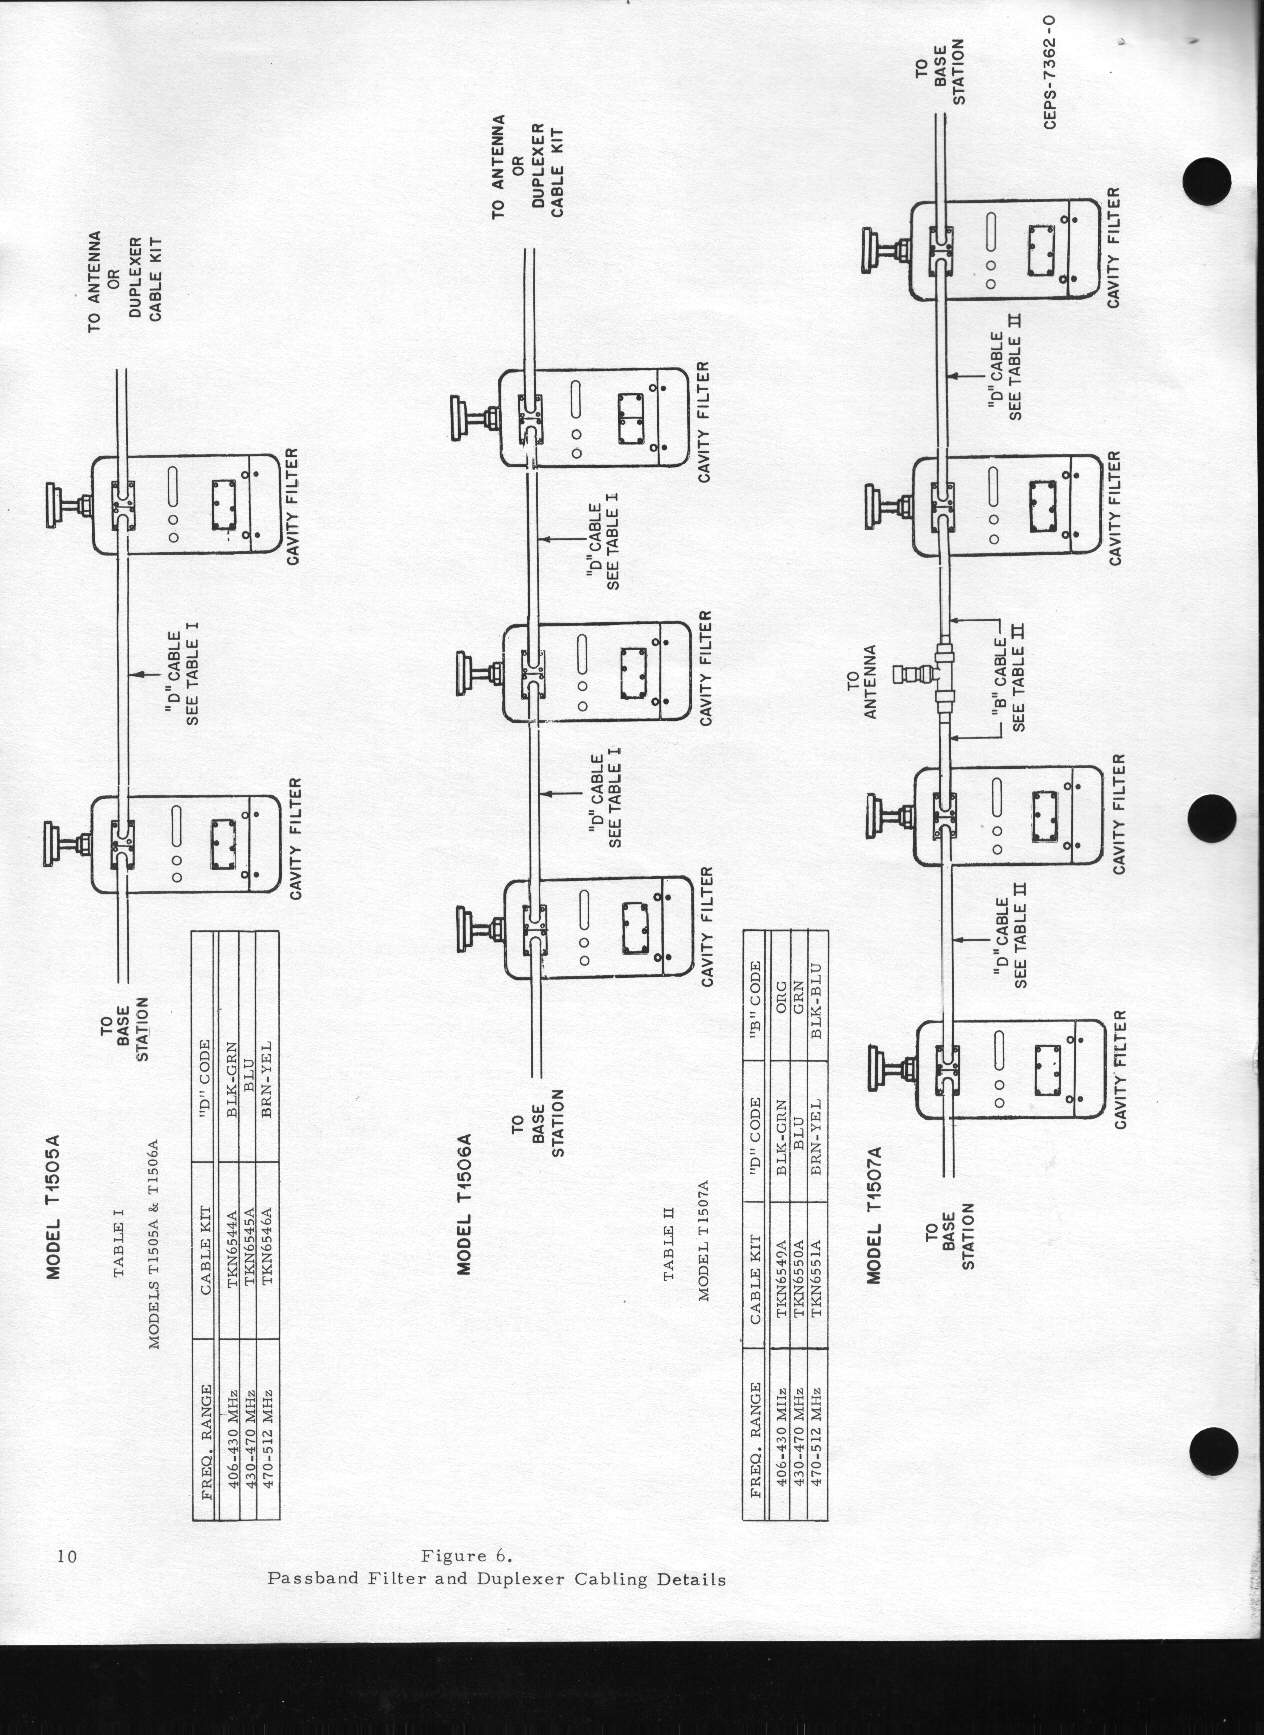 Motorola T Duplexer Cavity Filter Information Manuals And Other Documentation